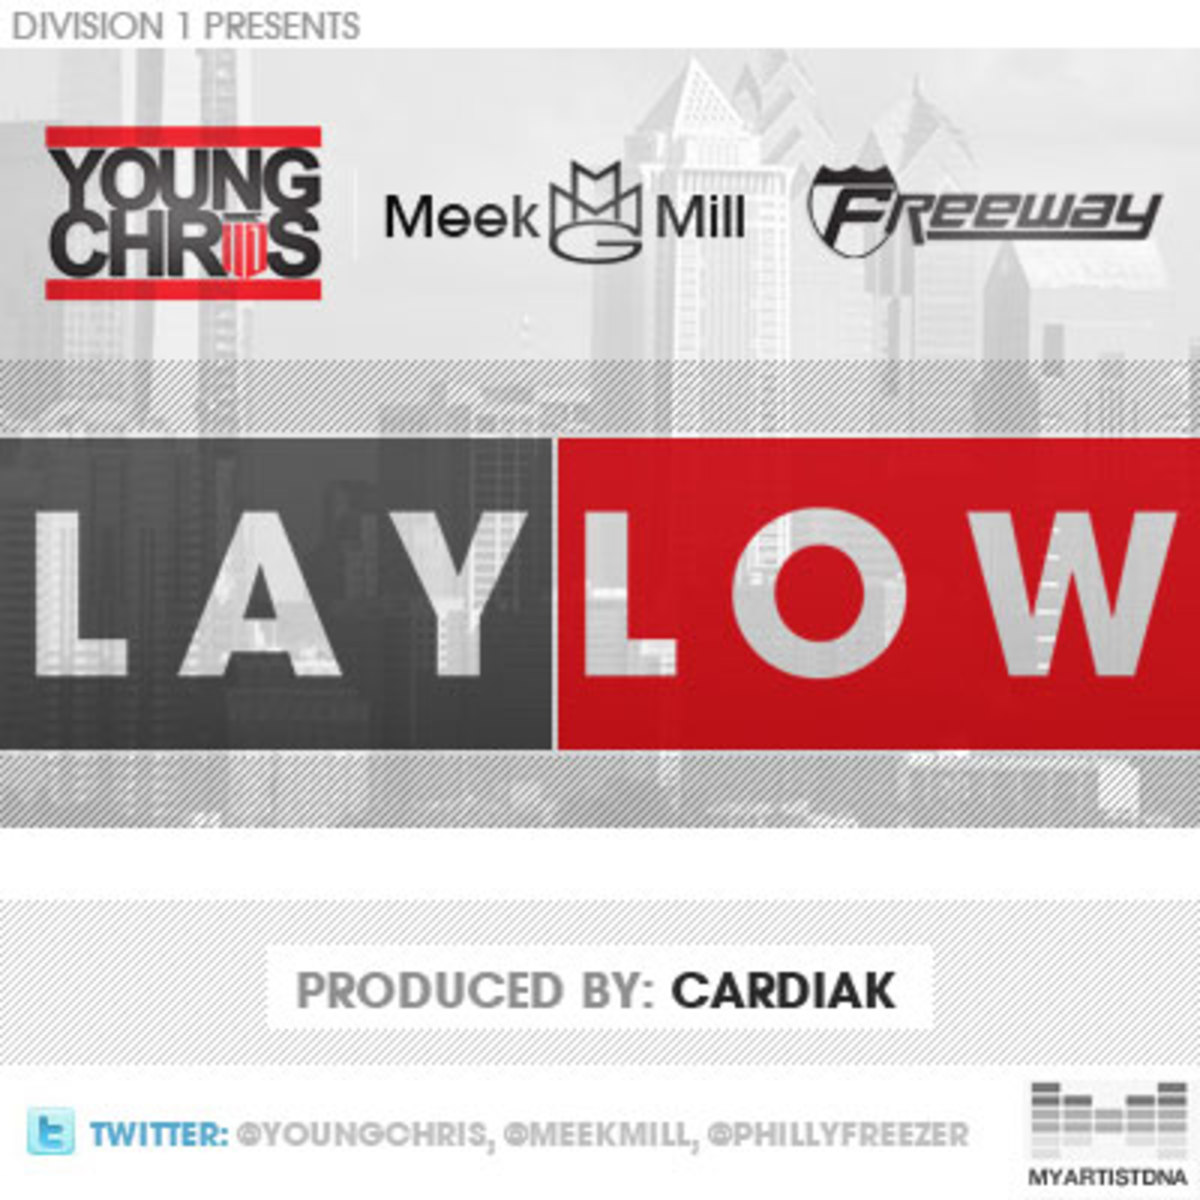 youngchris-laylow.jpg